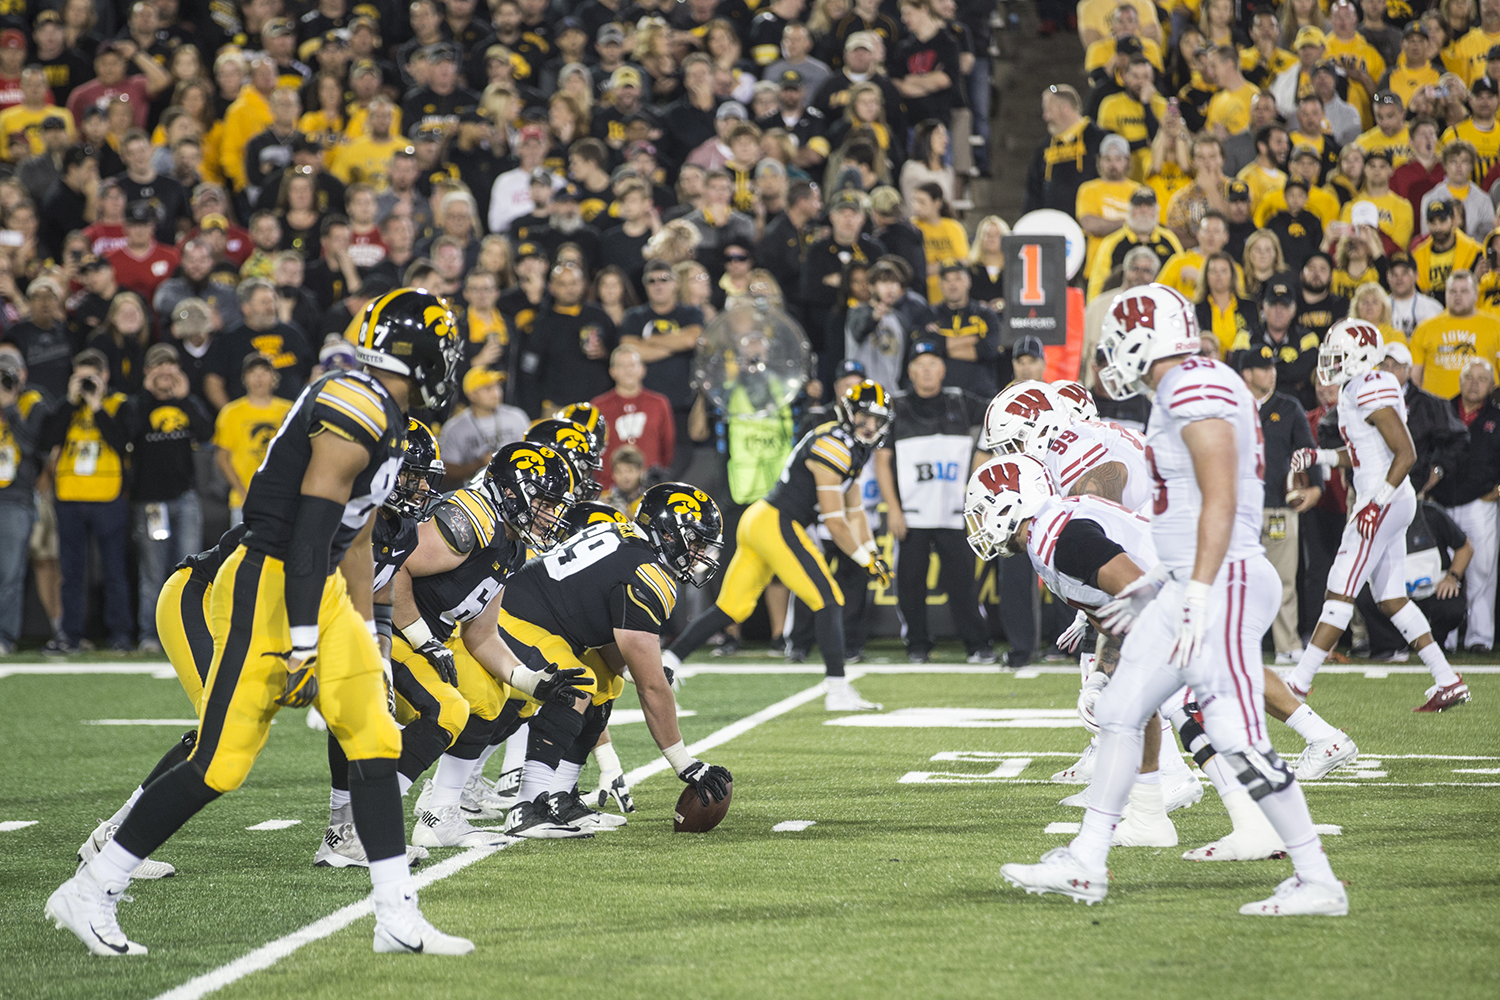 Iowa's Keegan Render prepares to snap the ball during a football game between Iowa and Wisconsin on Saturday, Sept. 22, 2018. The Badgers defeated the Hawkeyes, 28-17.